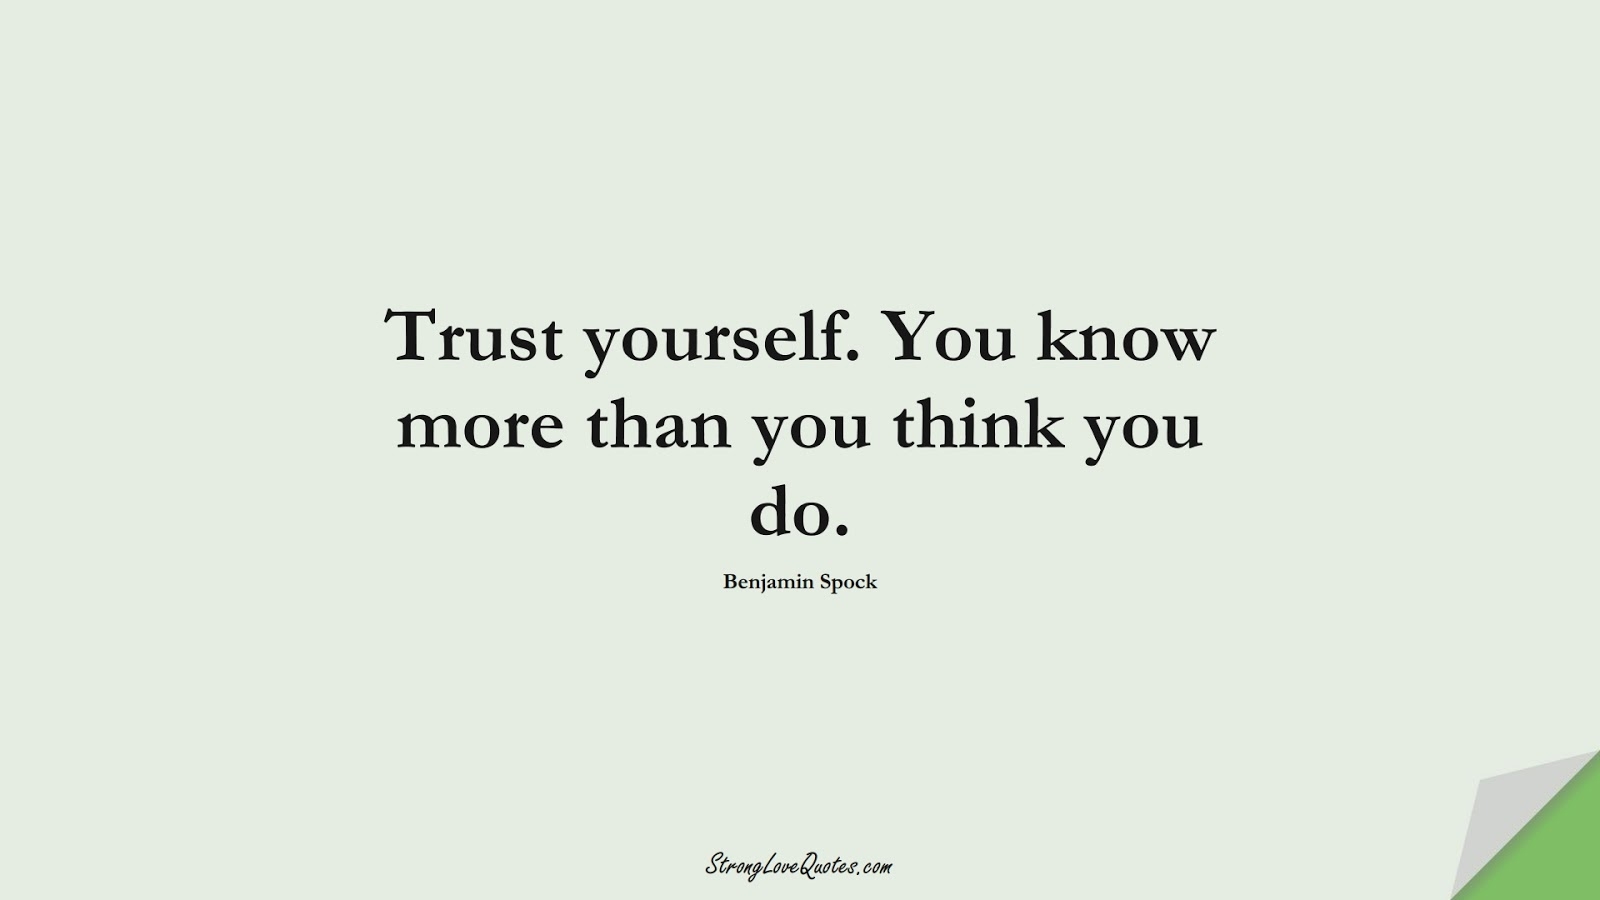 Trust yourself. You know more than you think you do. (Benjamin Spock);  #KnowledgeQuotes